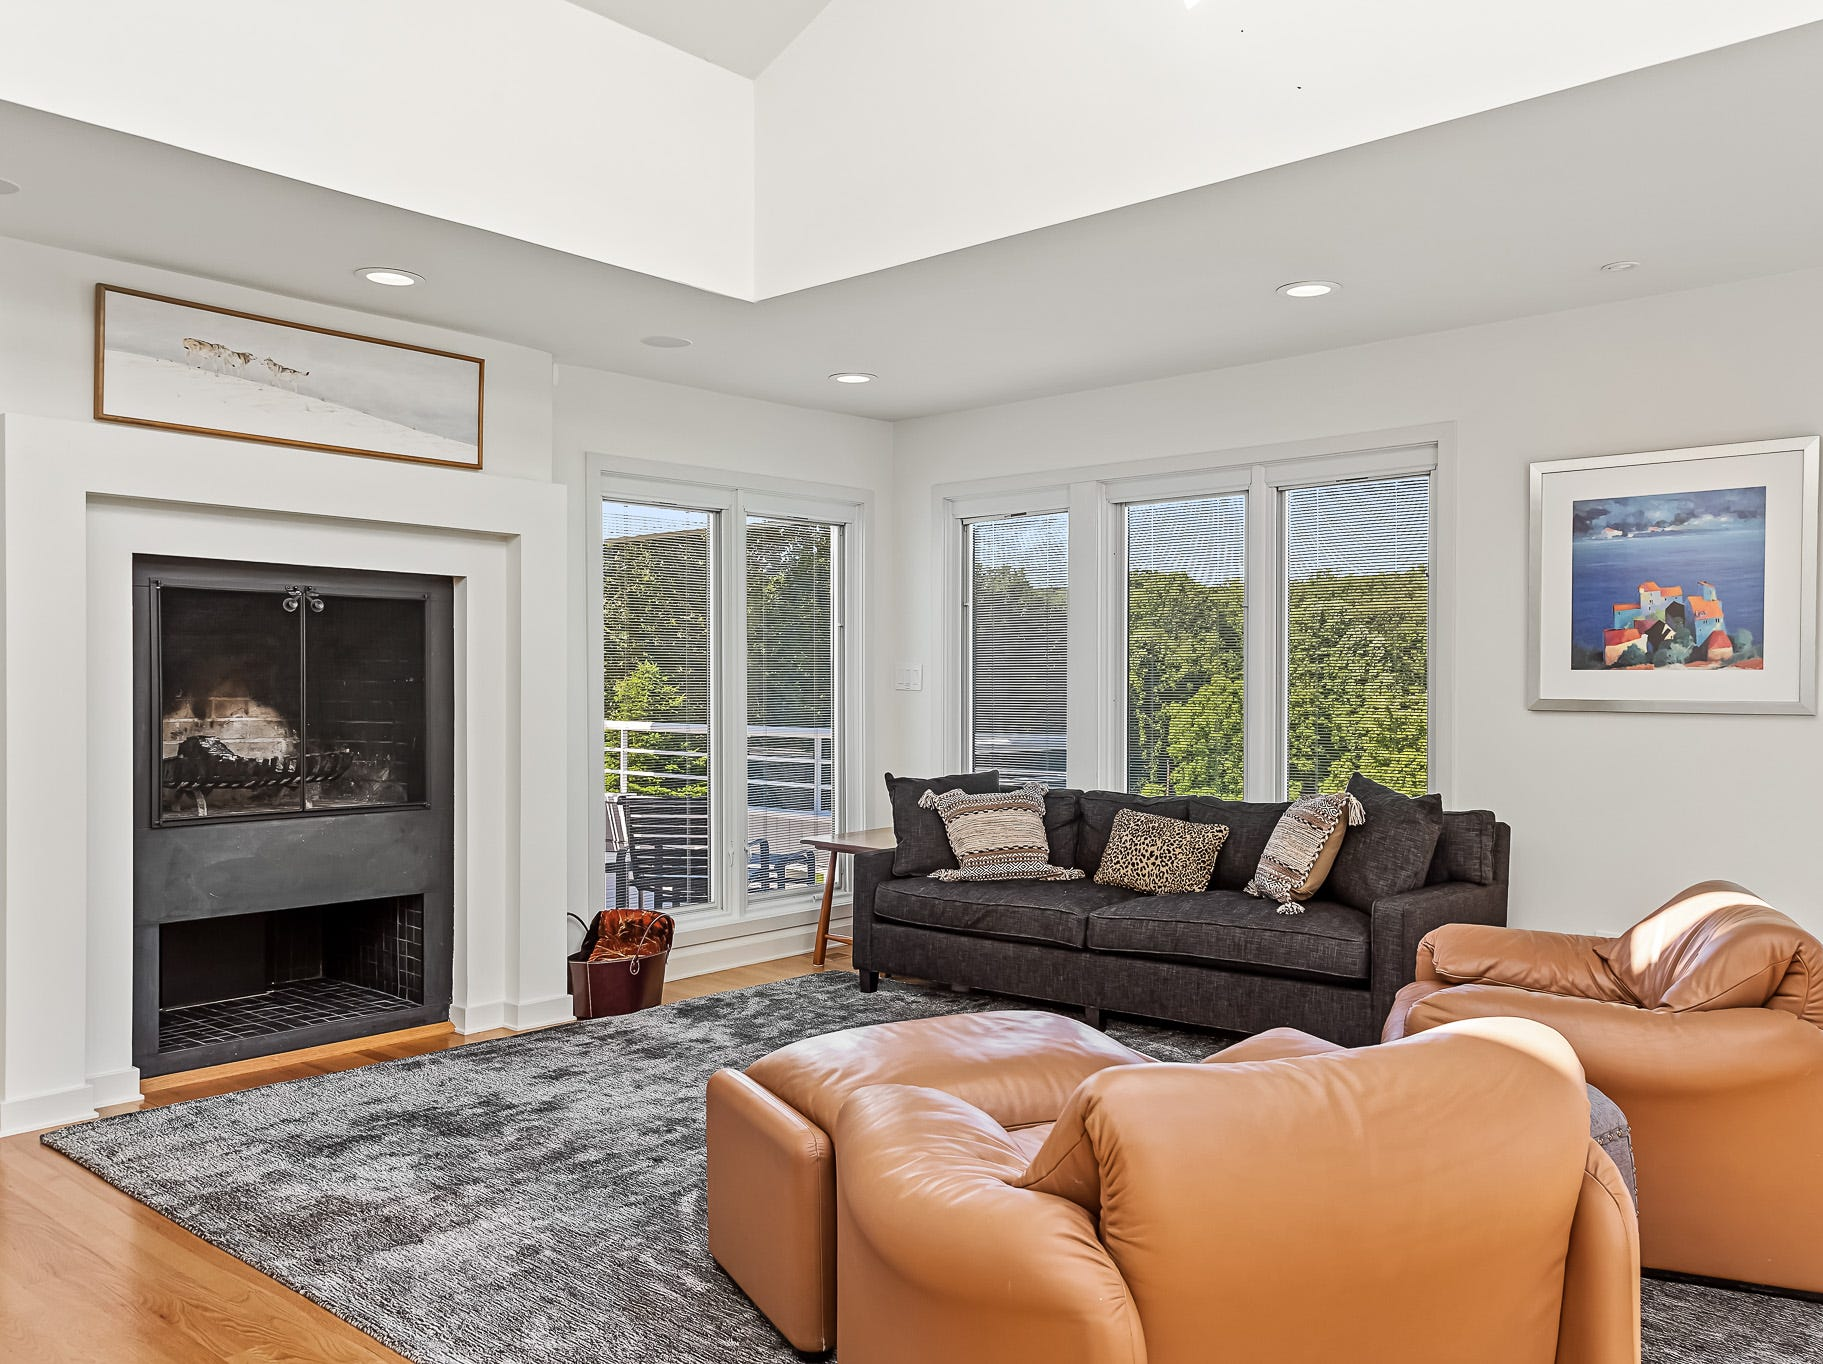 There's a wood-burning fireplace in the family room at 3611 Centerville Road in Greenville.